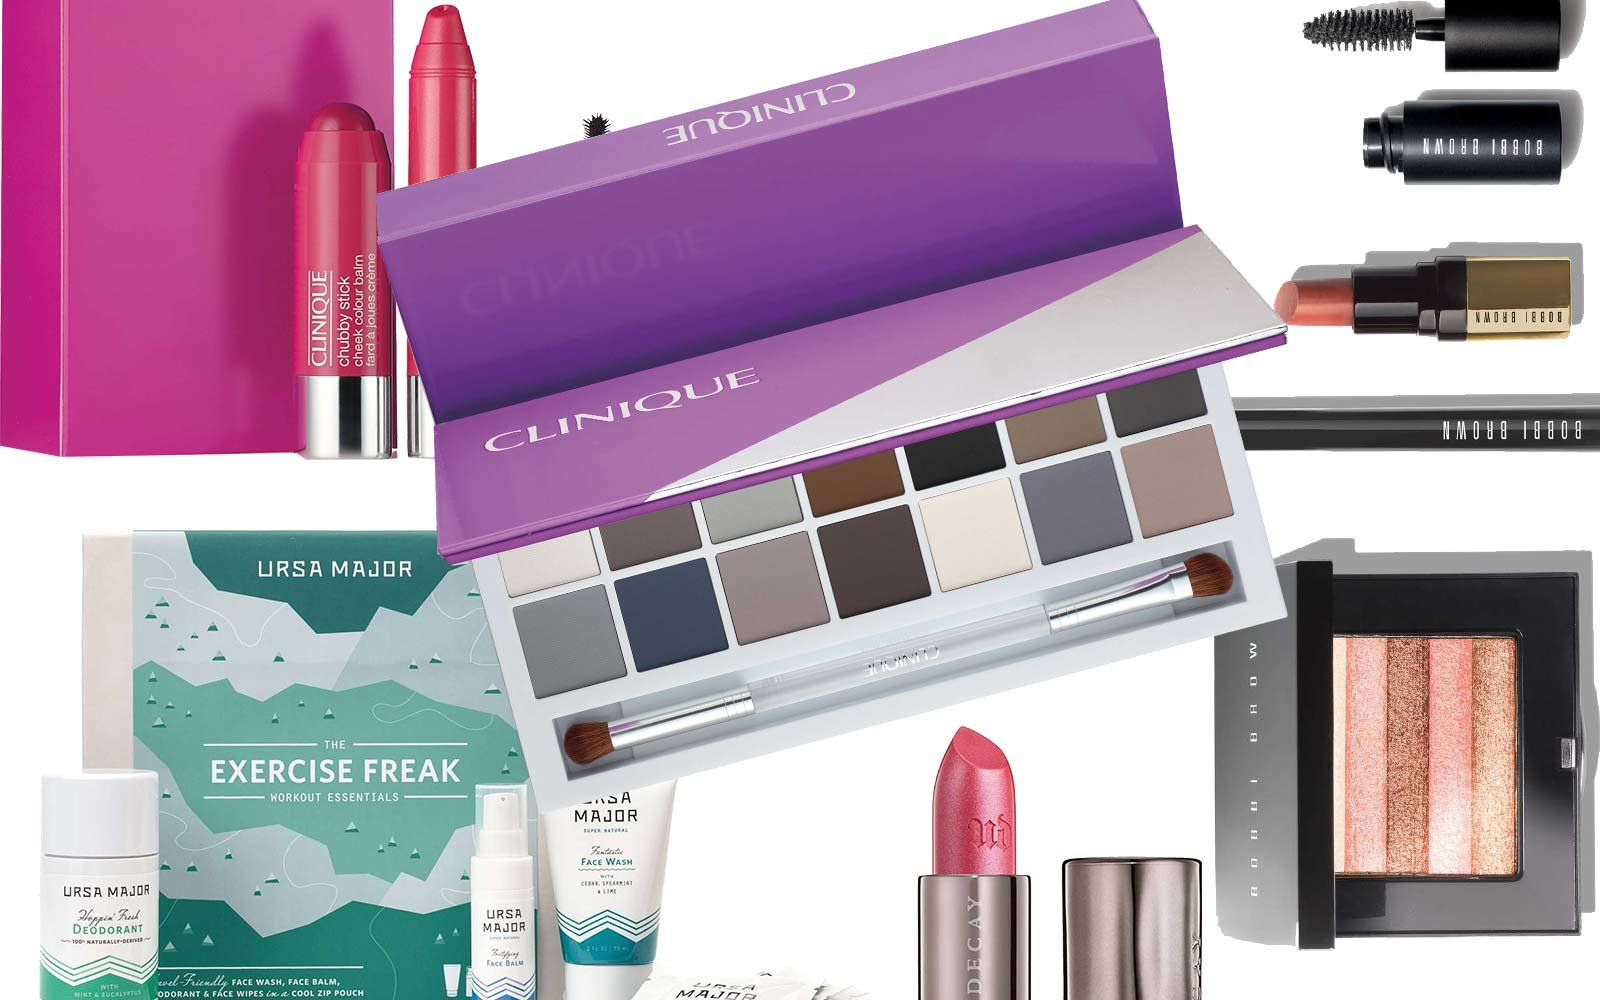 The Best Beauty Deals From Nordstrom's Half-yearly Sale